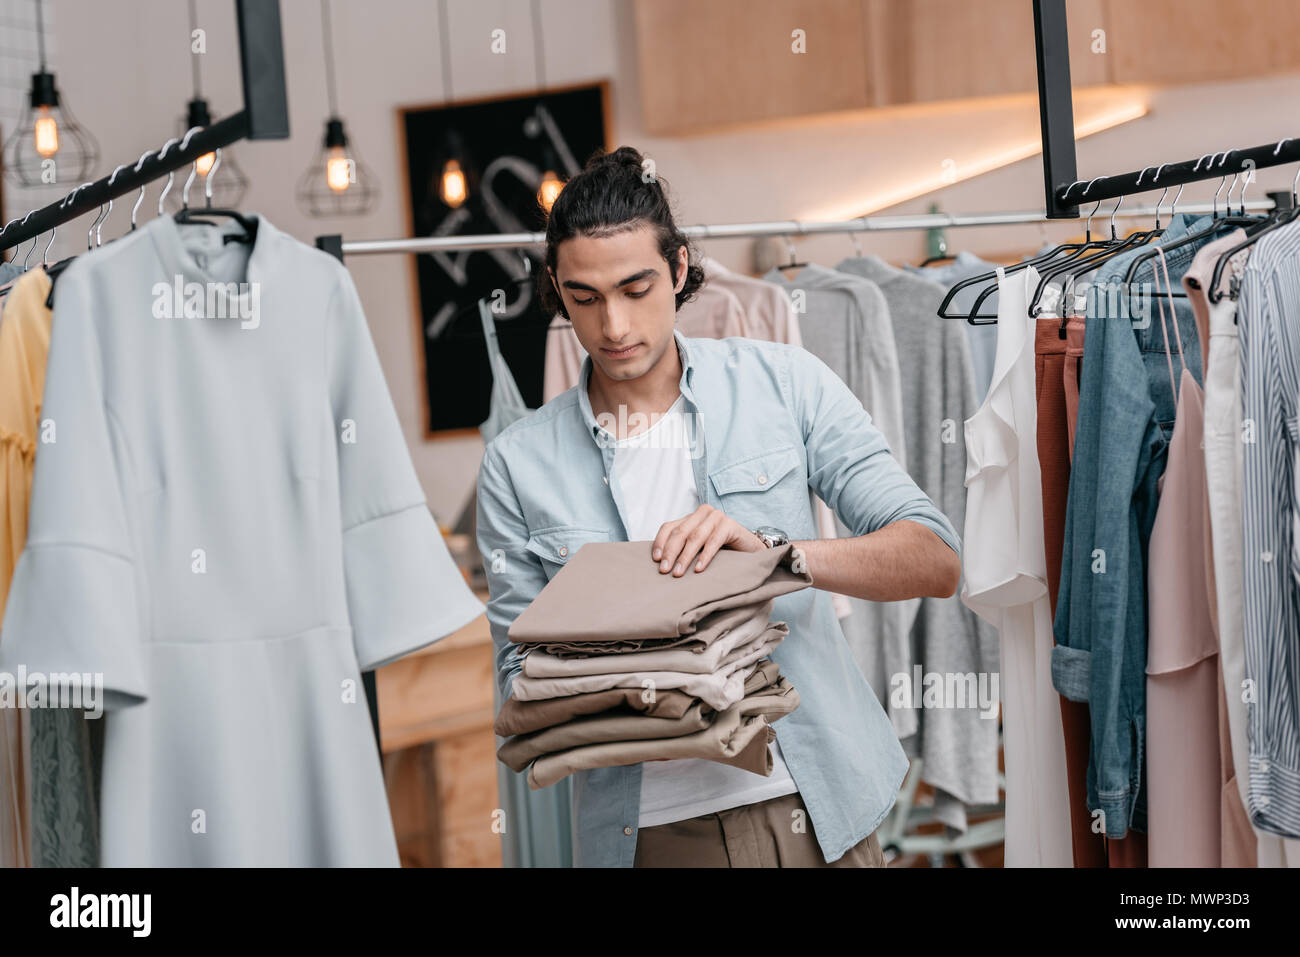 young business owner holding pile of pants while working in boutique before opening - Stock Image